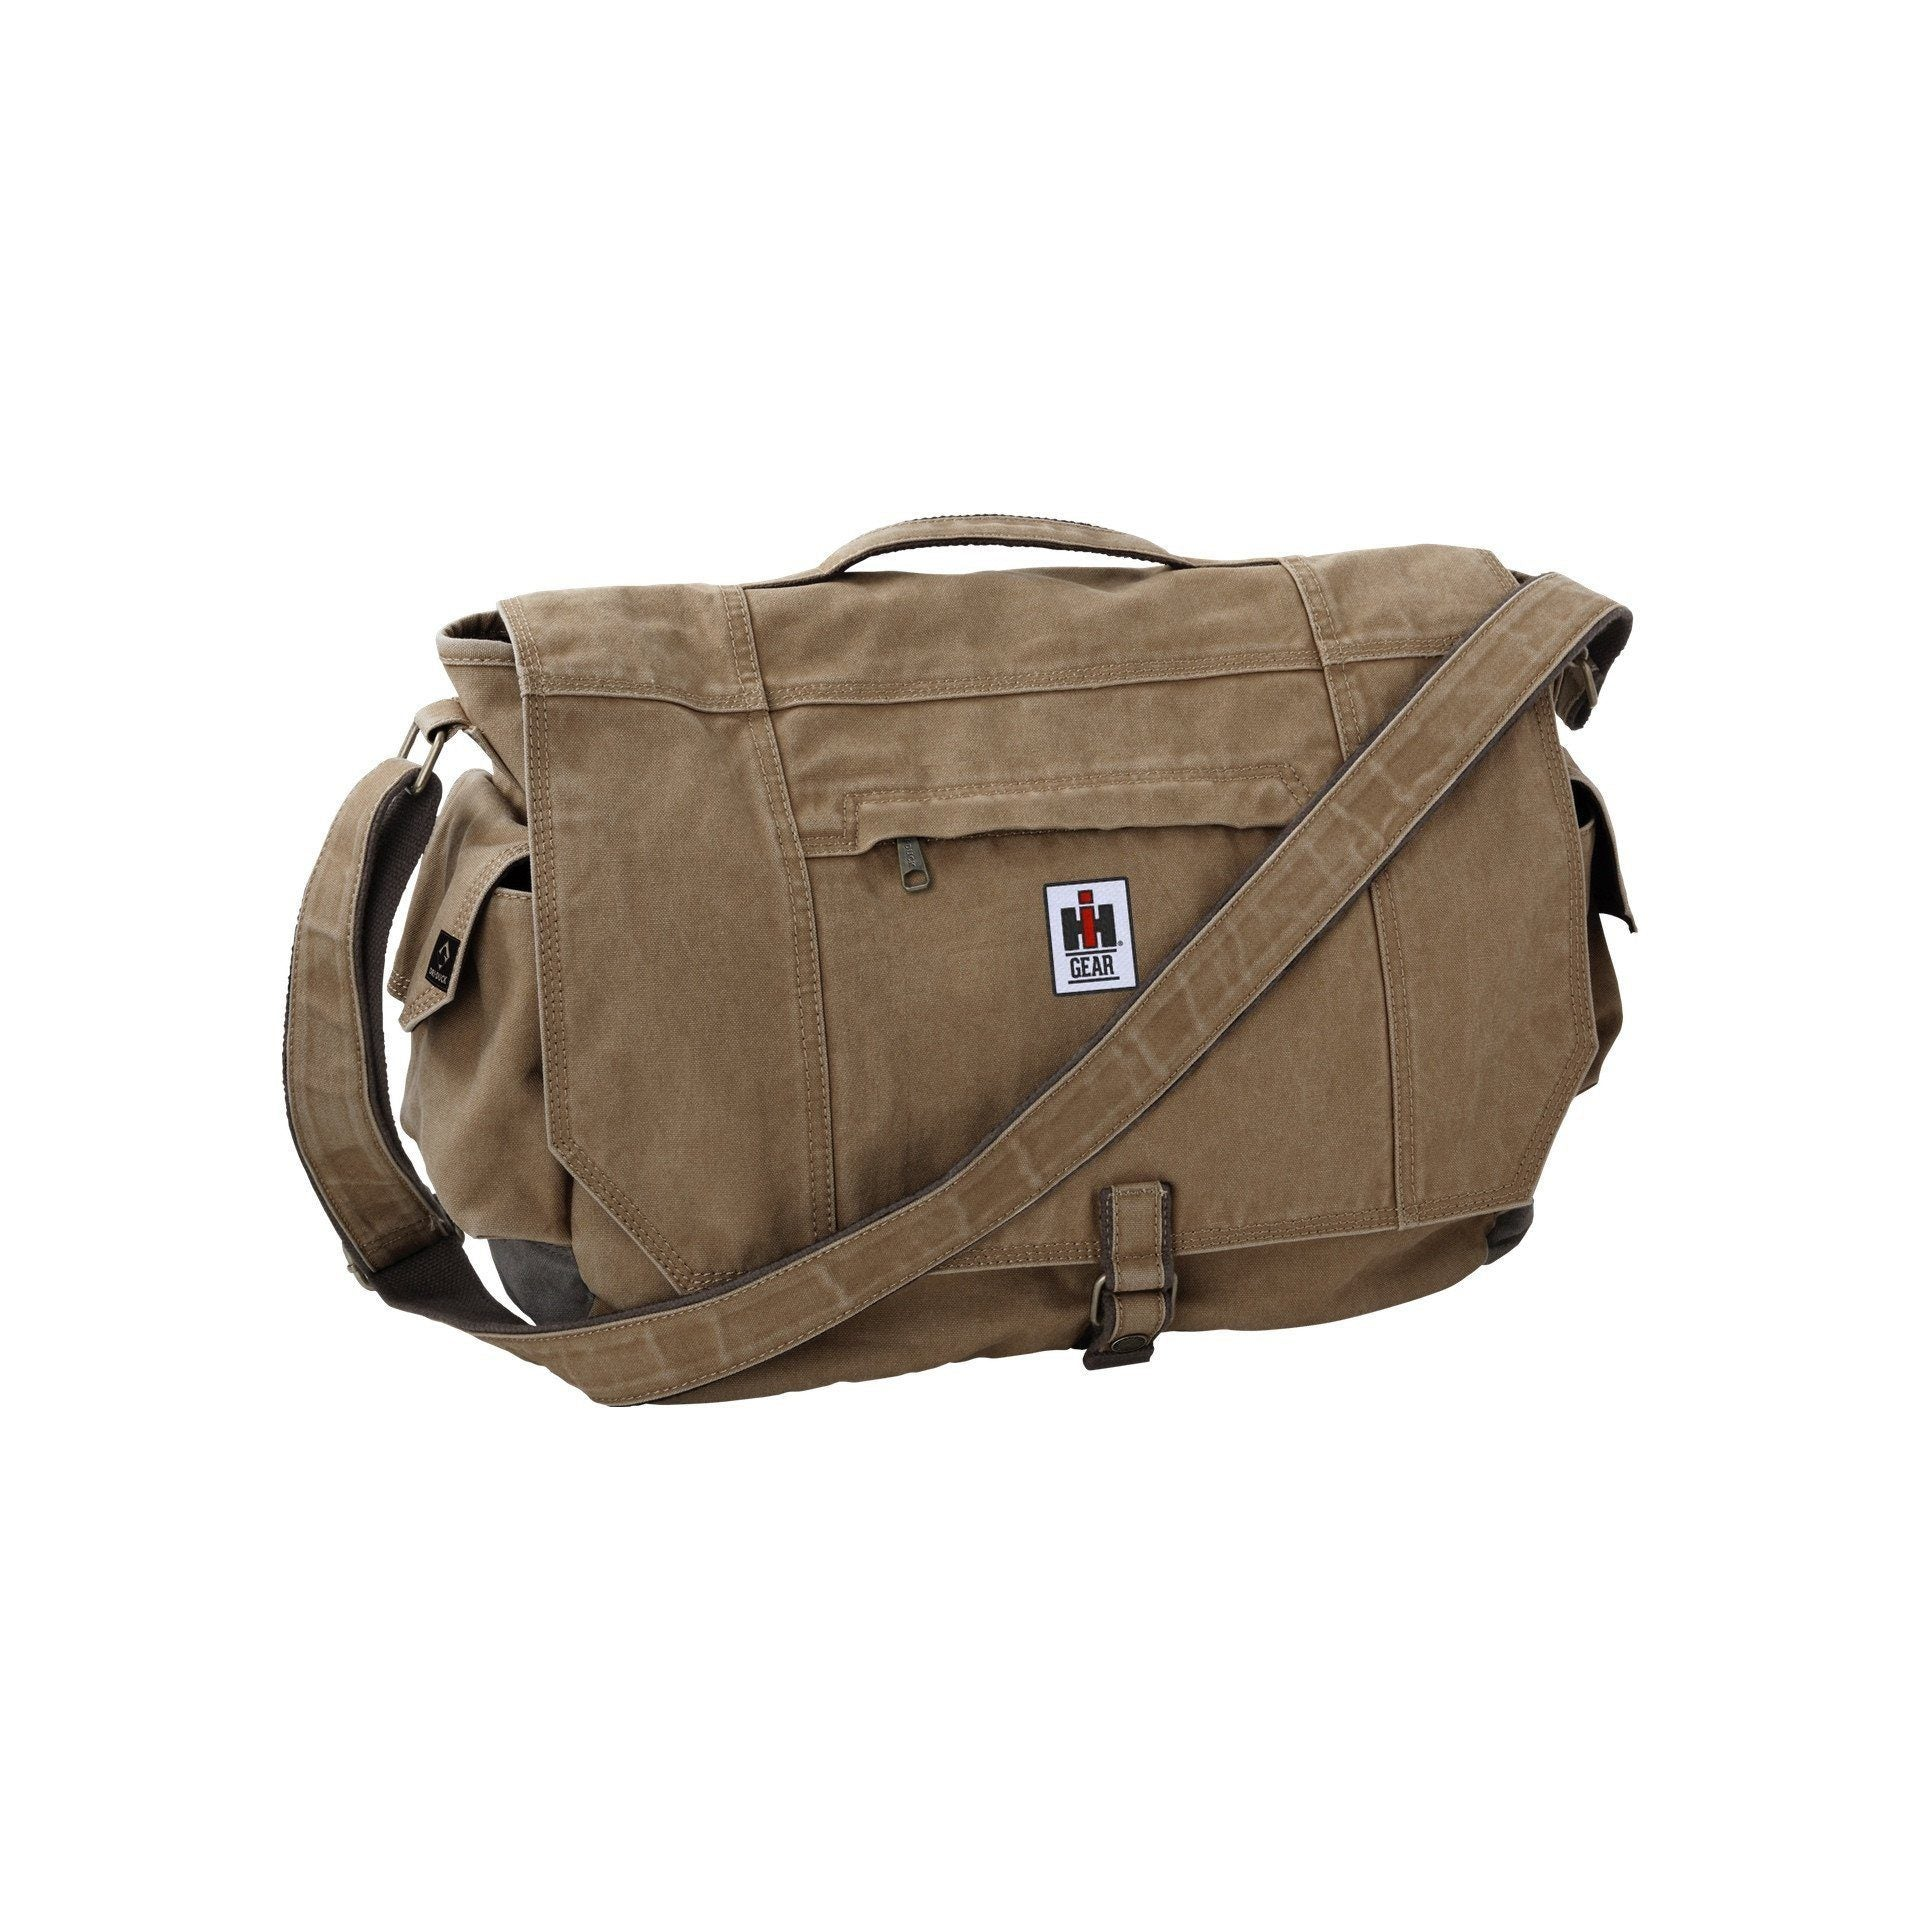 Rugged and durable IH trail bag.